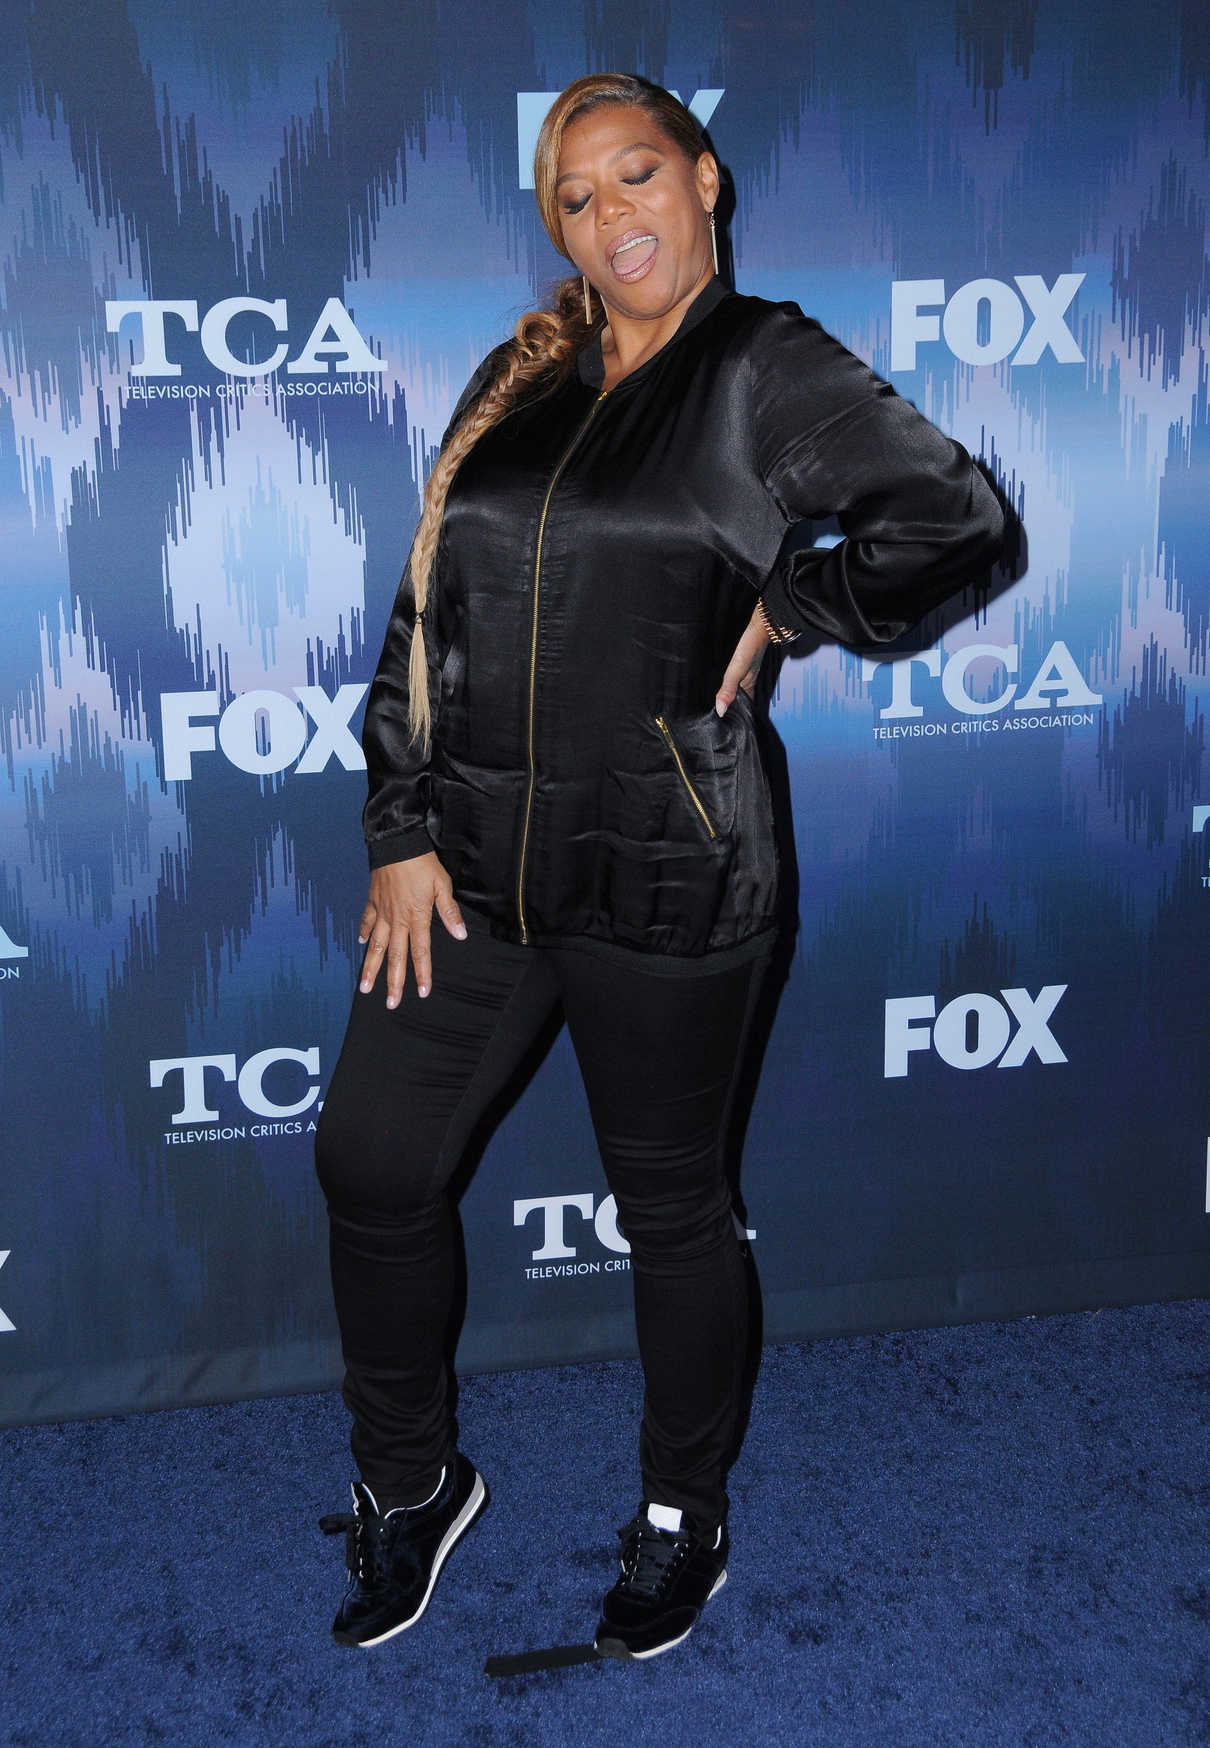 Queen Latifah at the FOX All-Star Party During the 2017 Winter TCA Tour in Pasadena 01/11/2017-4